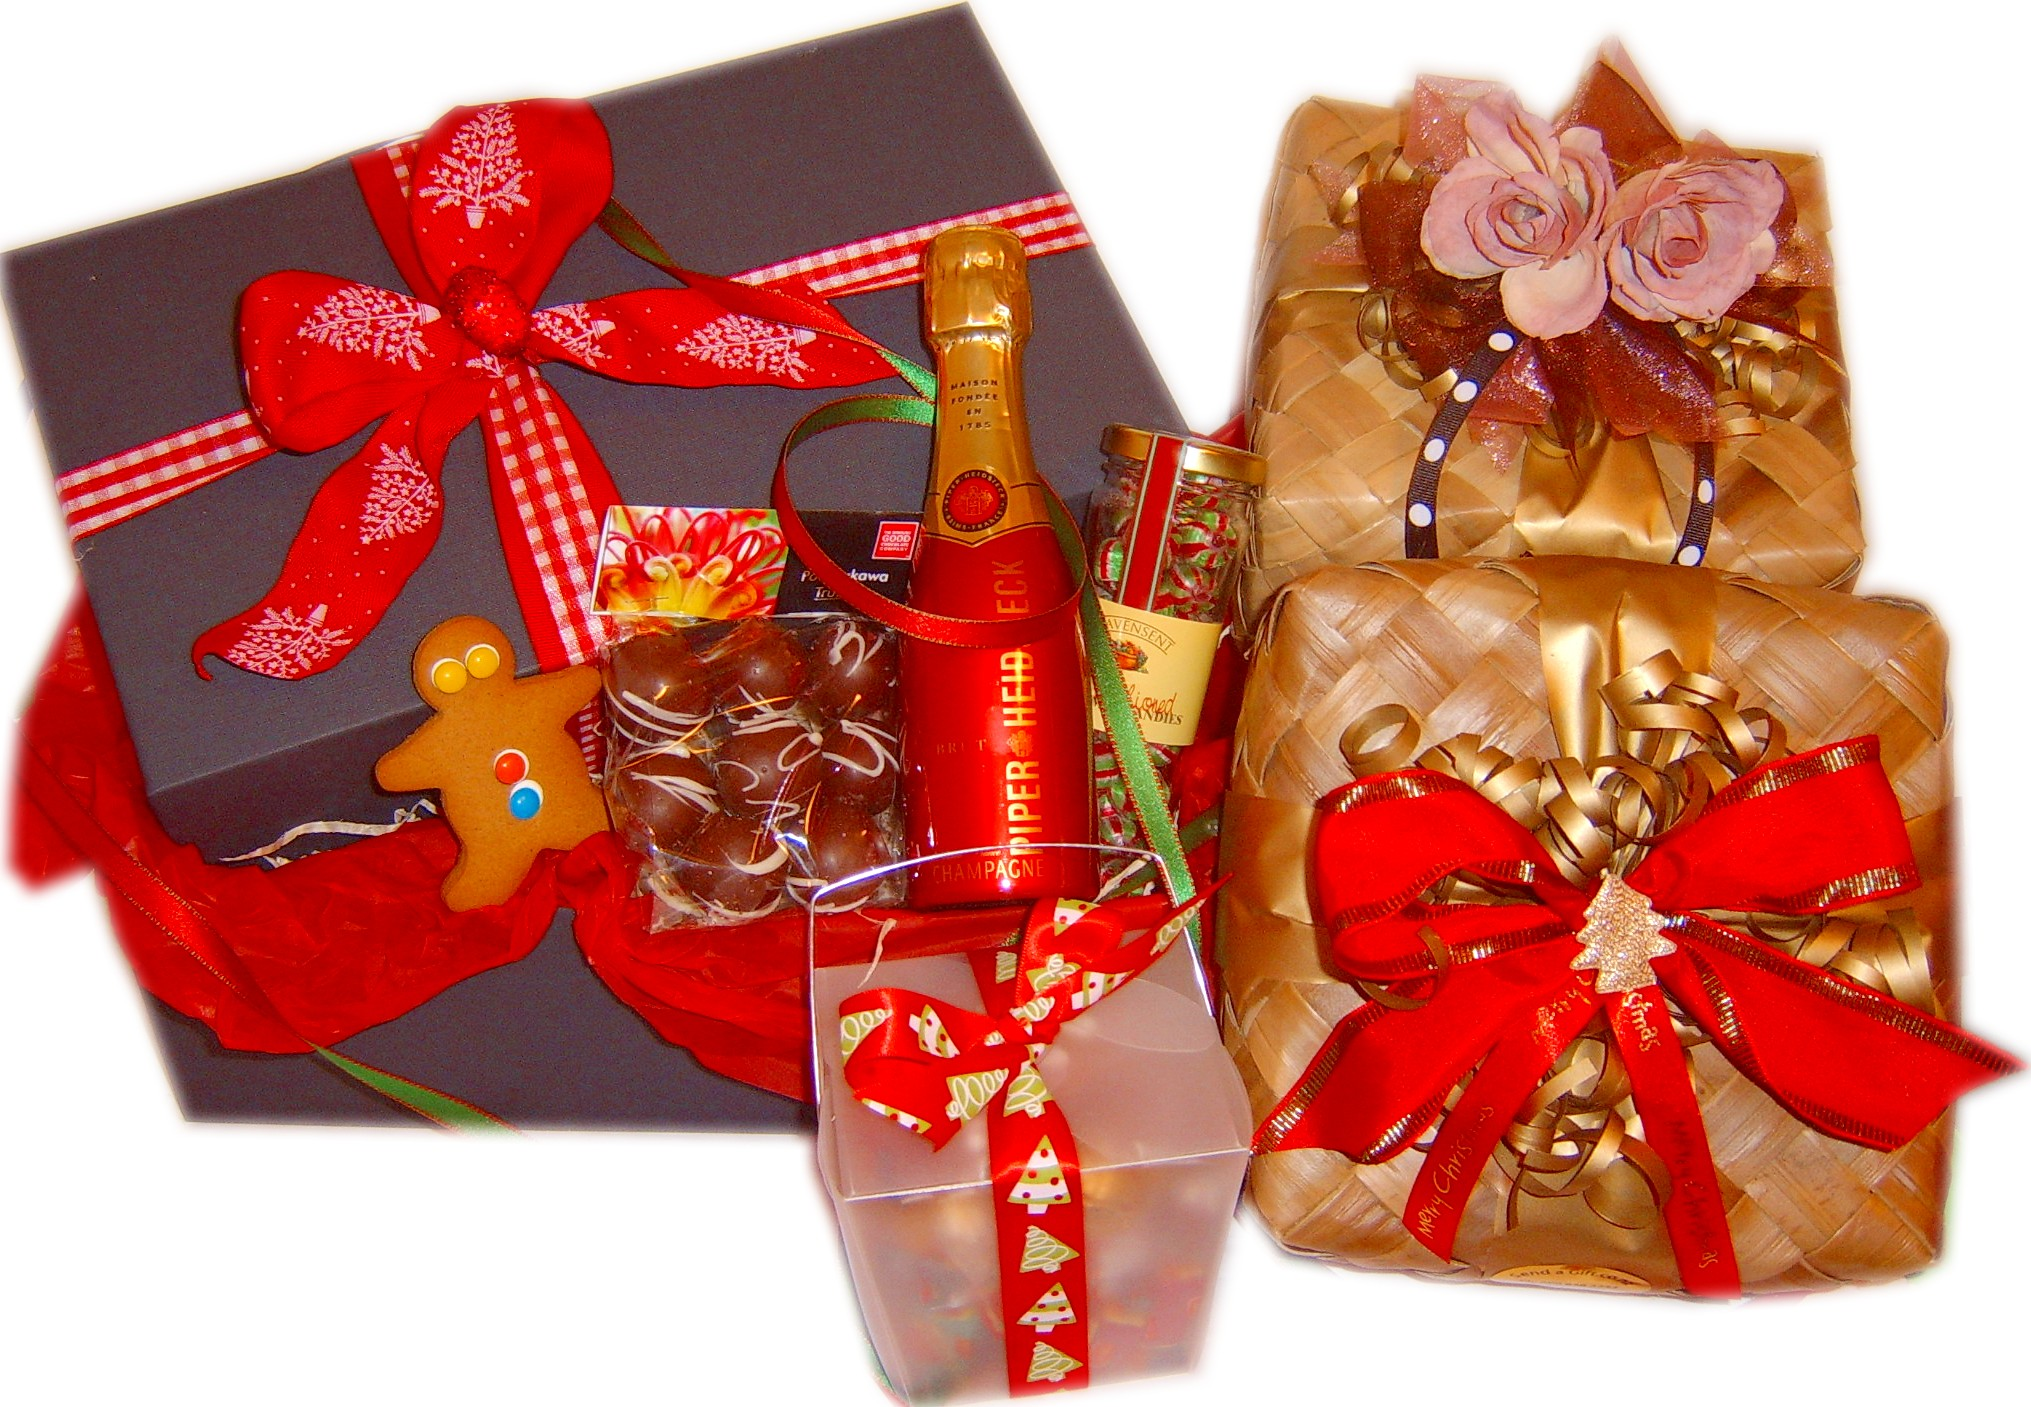 Send a Gift, home of gorgeous gifts for all occasions